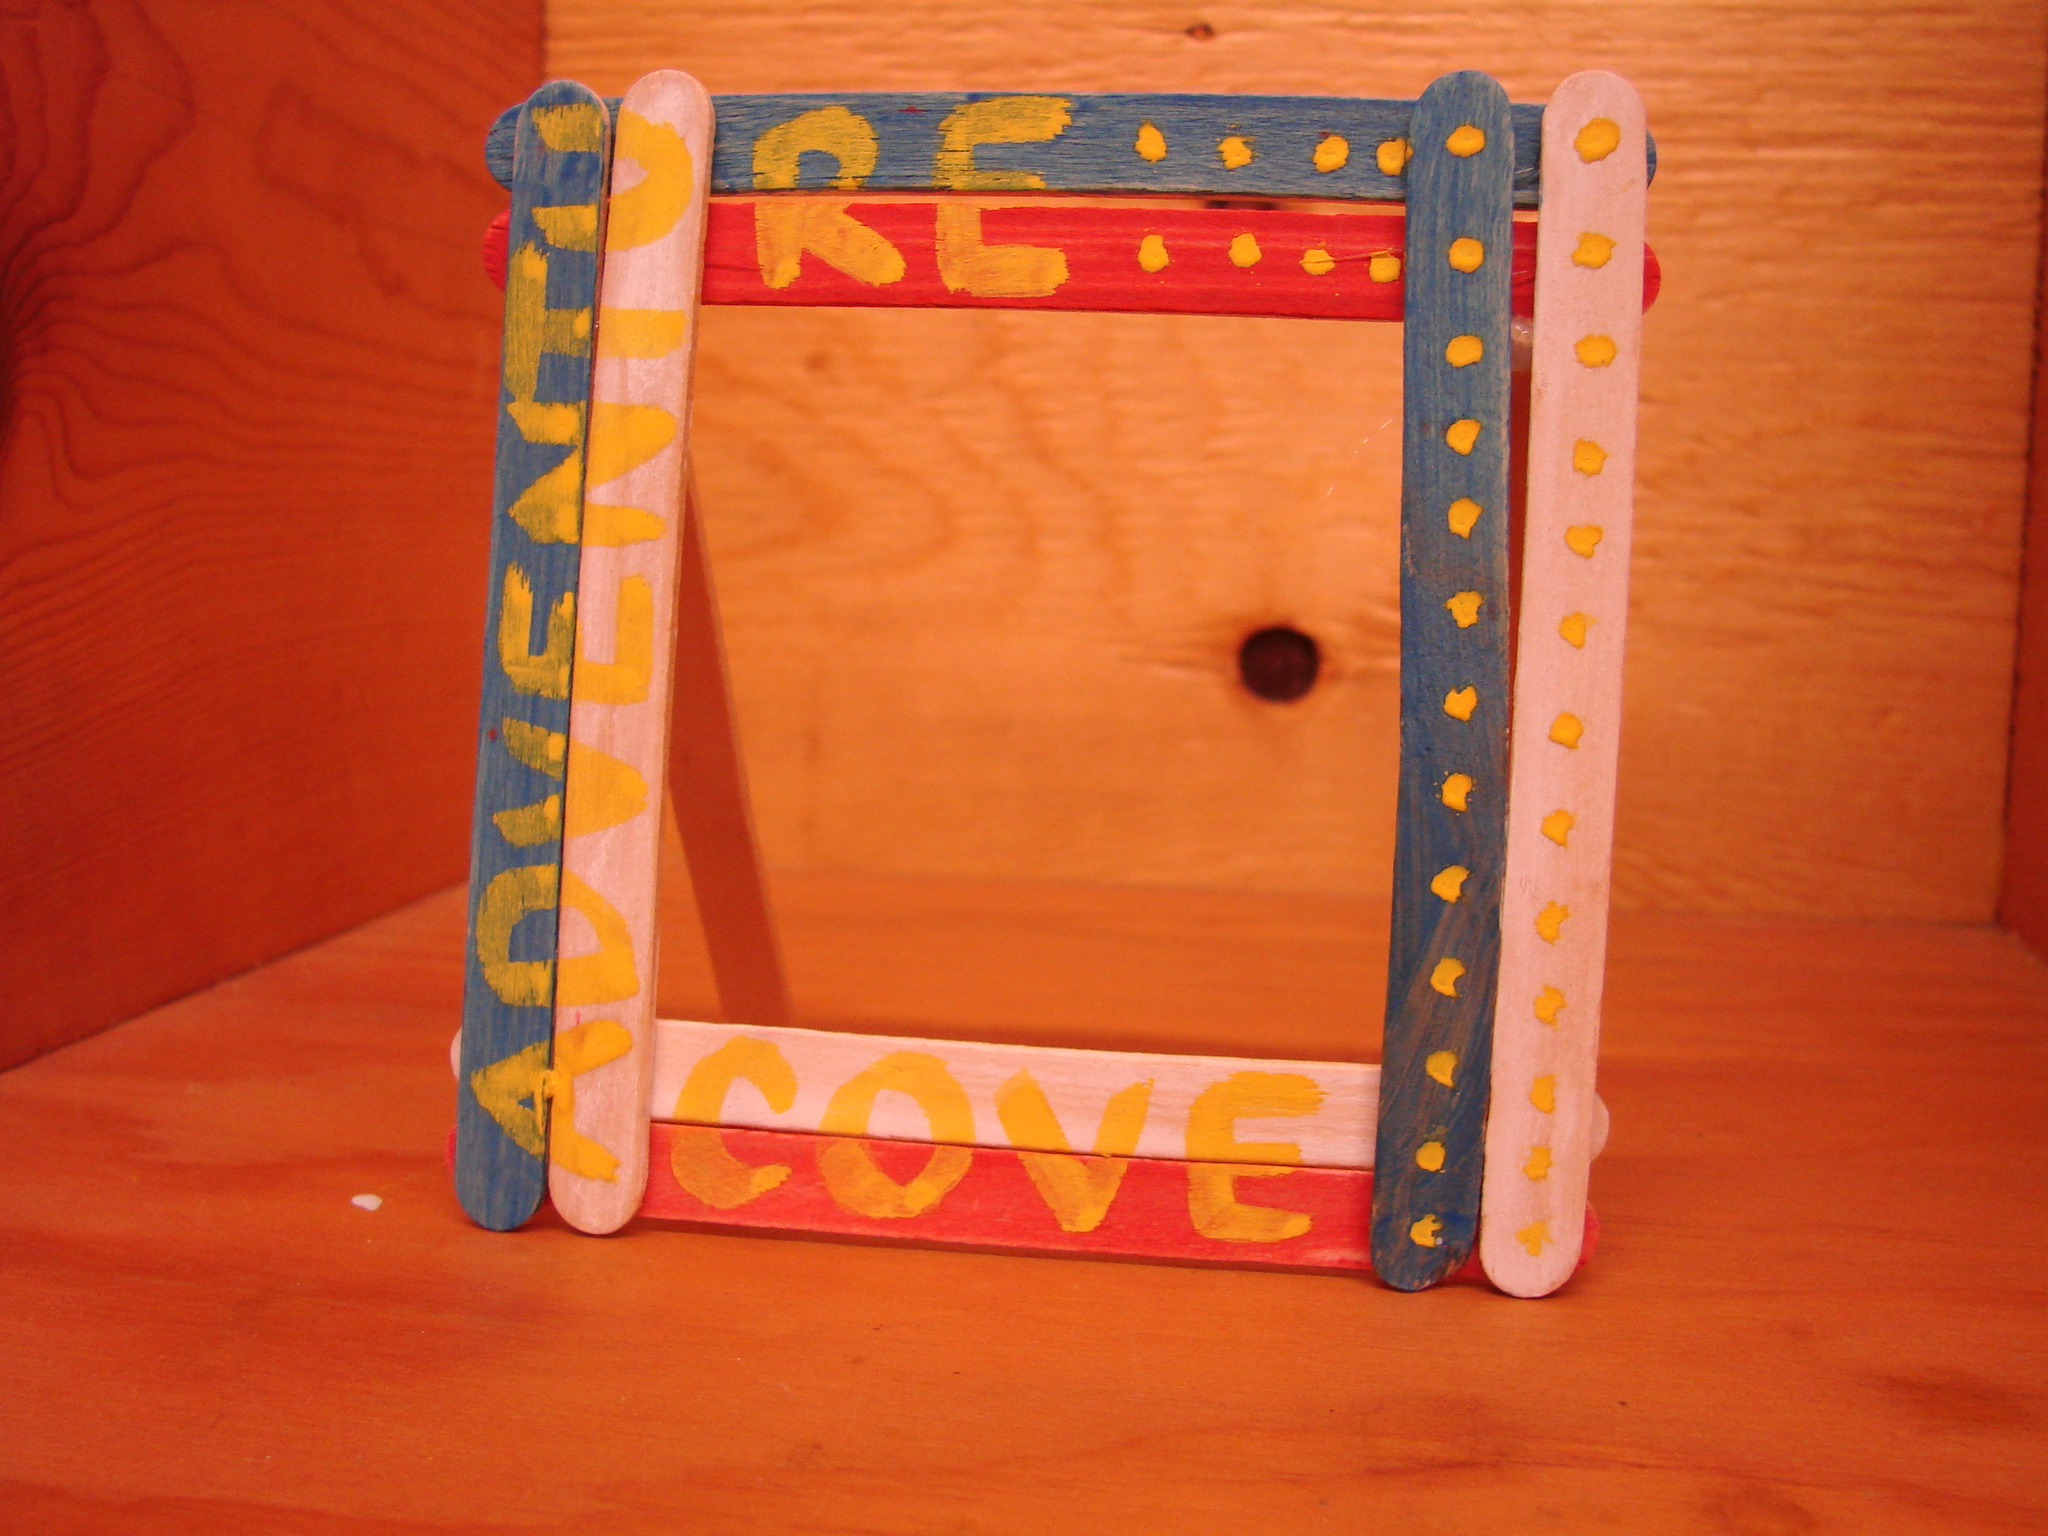 Fun kids craft ideas the resort guide front view of a popsicle stick picture frame jeuxipadfo Gallery